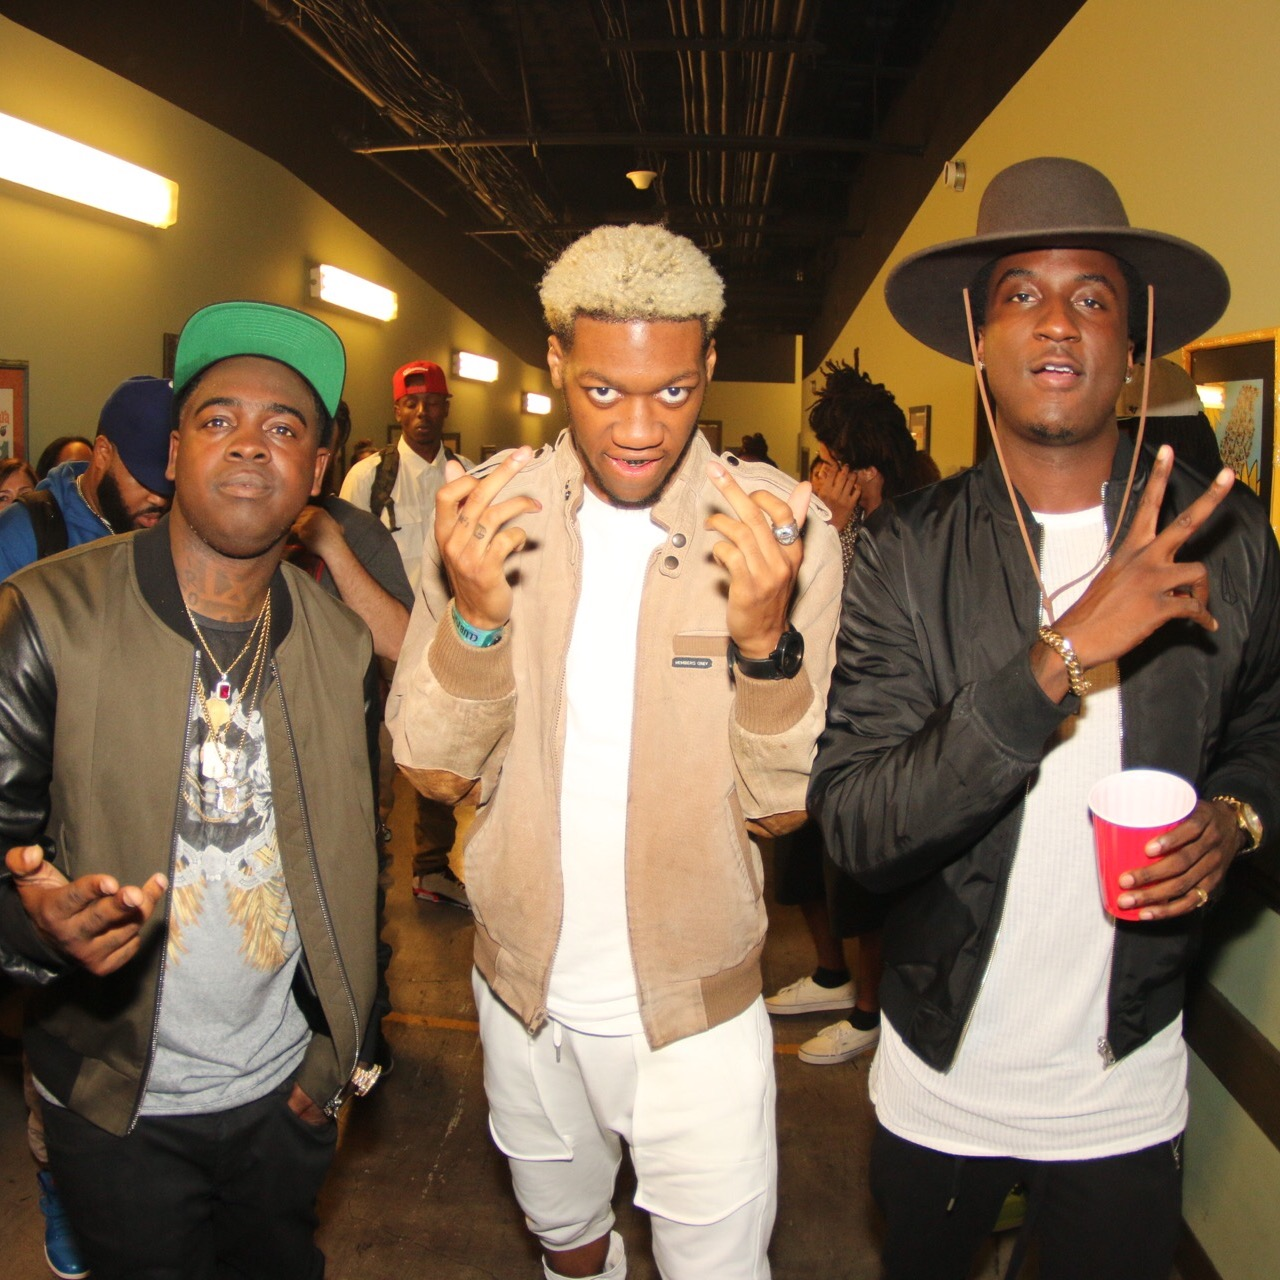 Kidd Kidd, Og Maco and K Camp | Courtesy of XXL